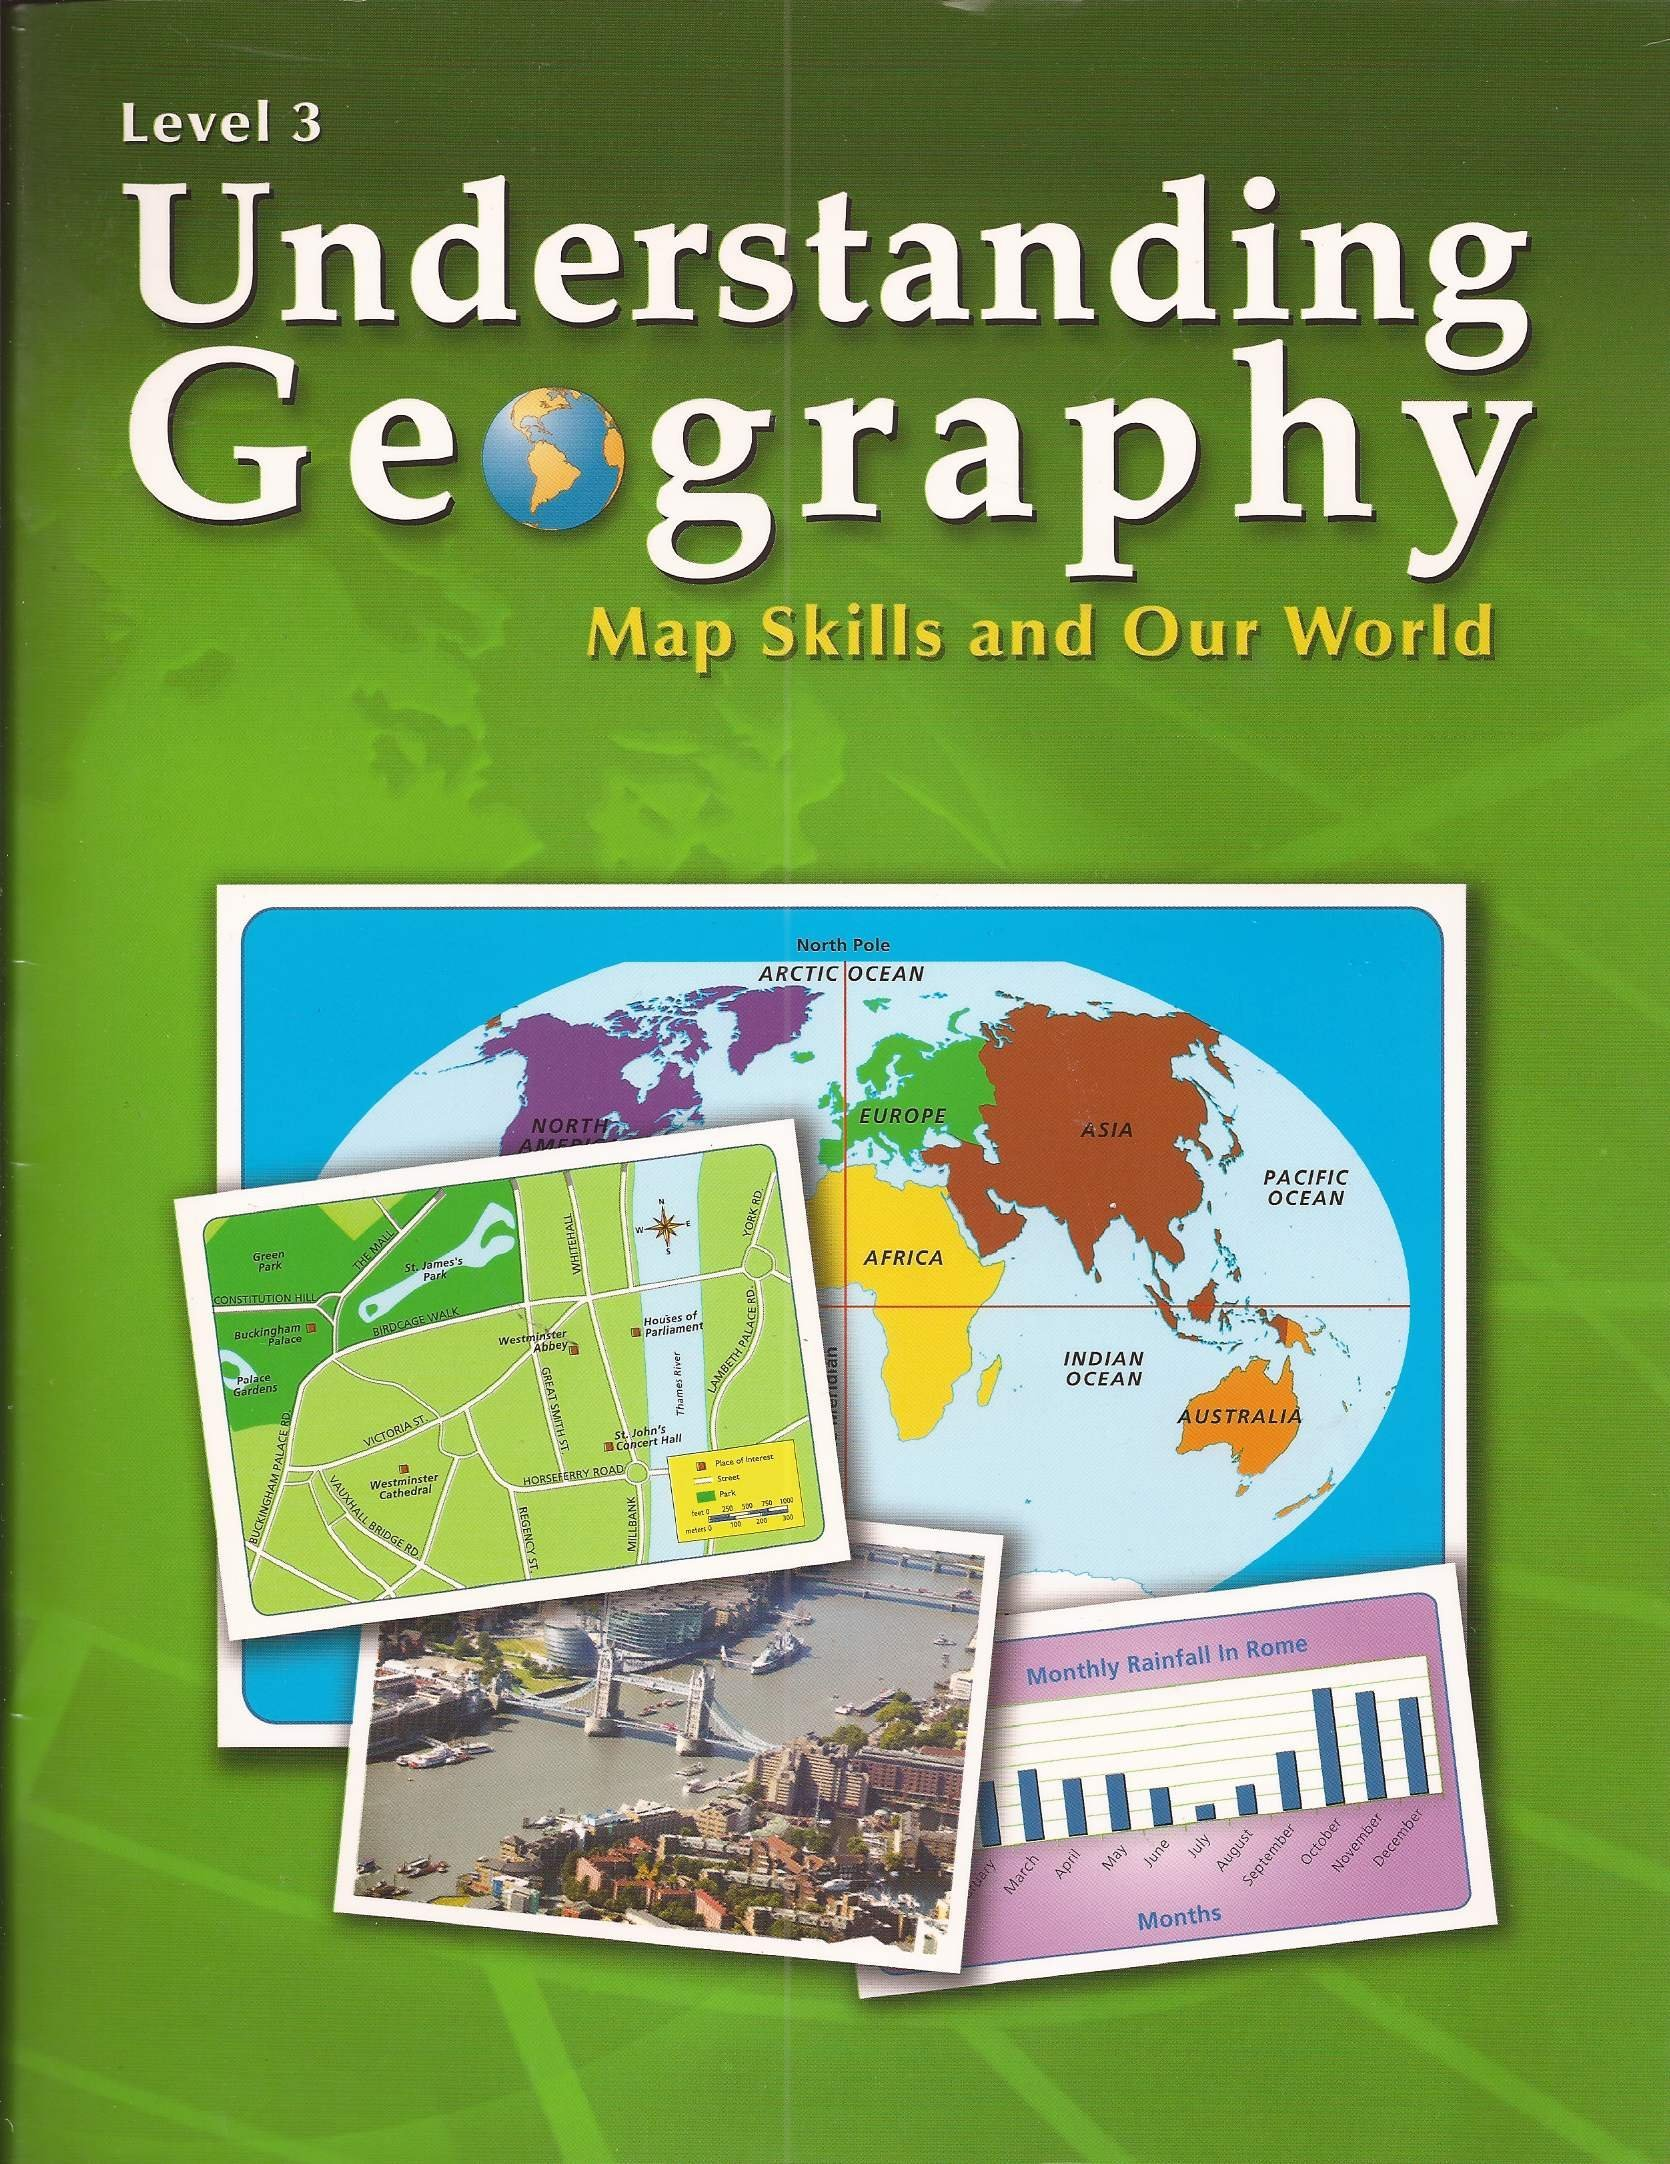 Understanding Geography: Map Skills and Our World, Level 3 ... on culture world maps, service world maps, black and white world maps, helpful world maps, teaching world maps, practice world maps, reliable world maps, sweet world maps, creative world maps, pattern world maps,